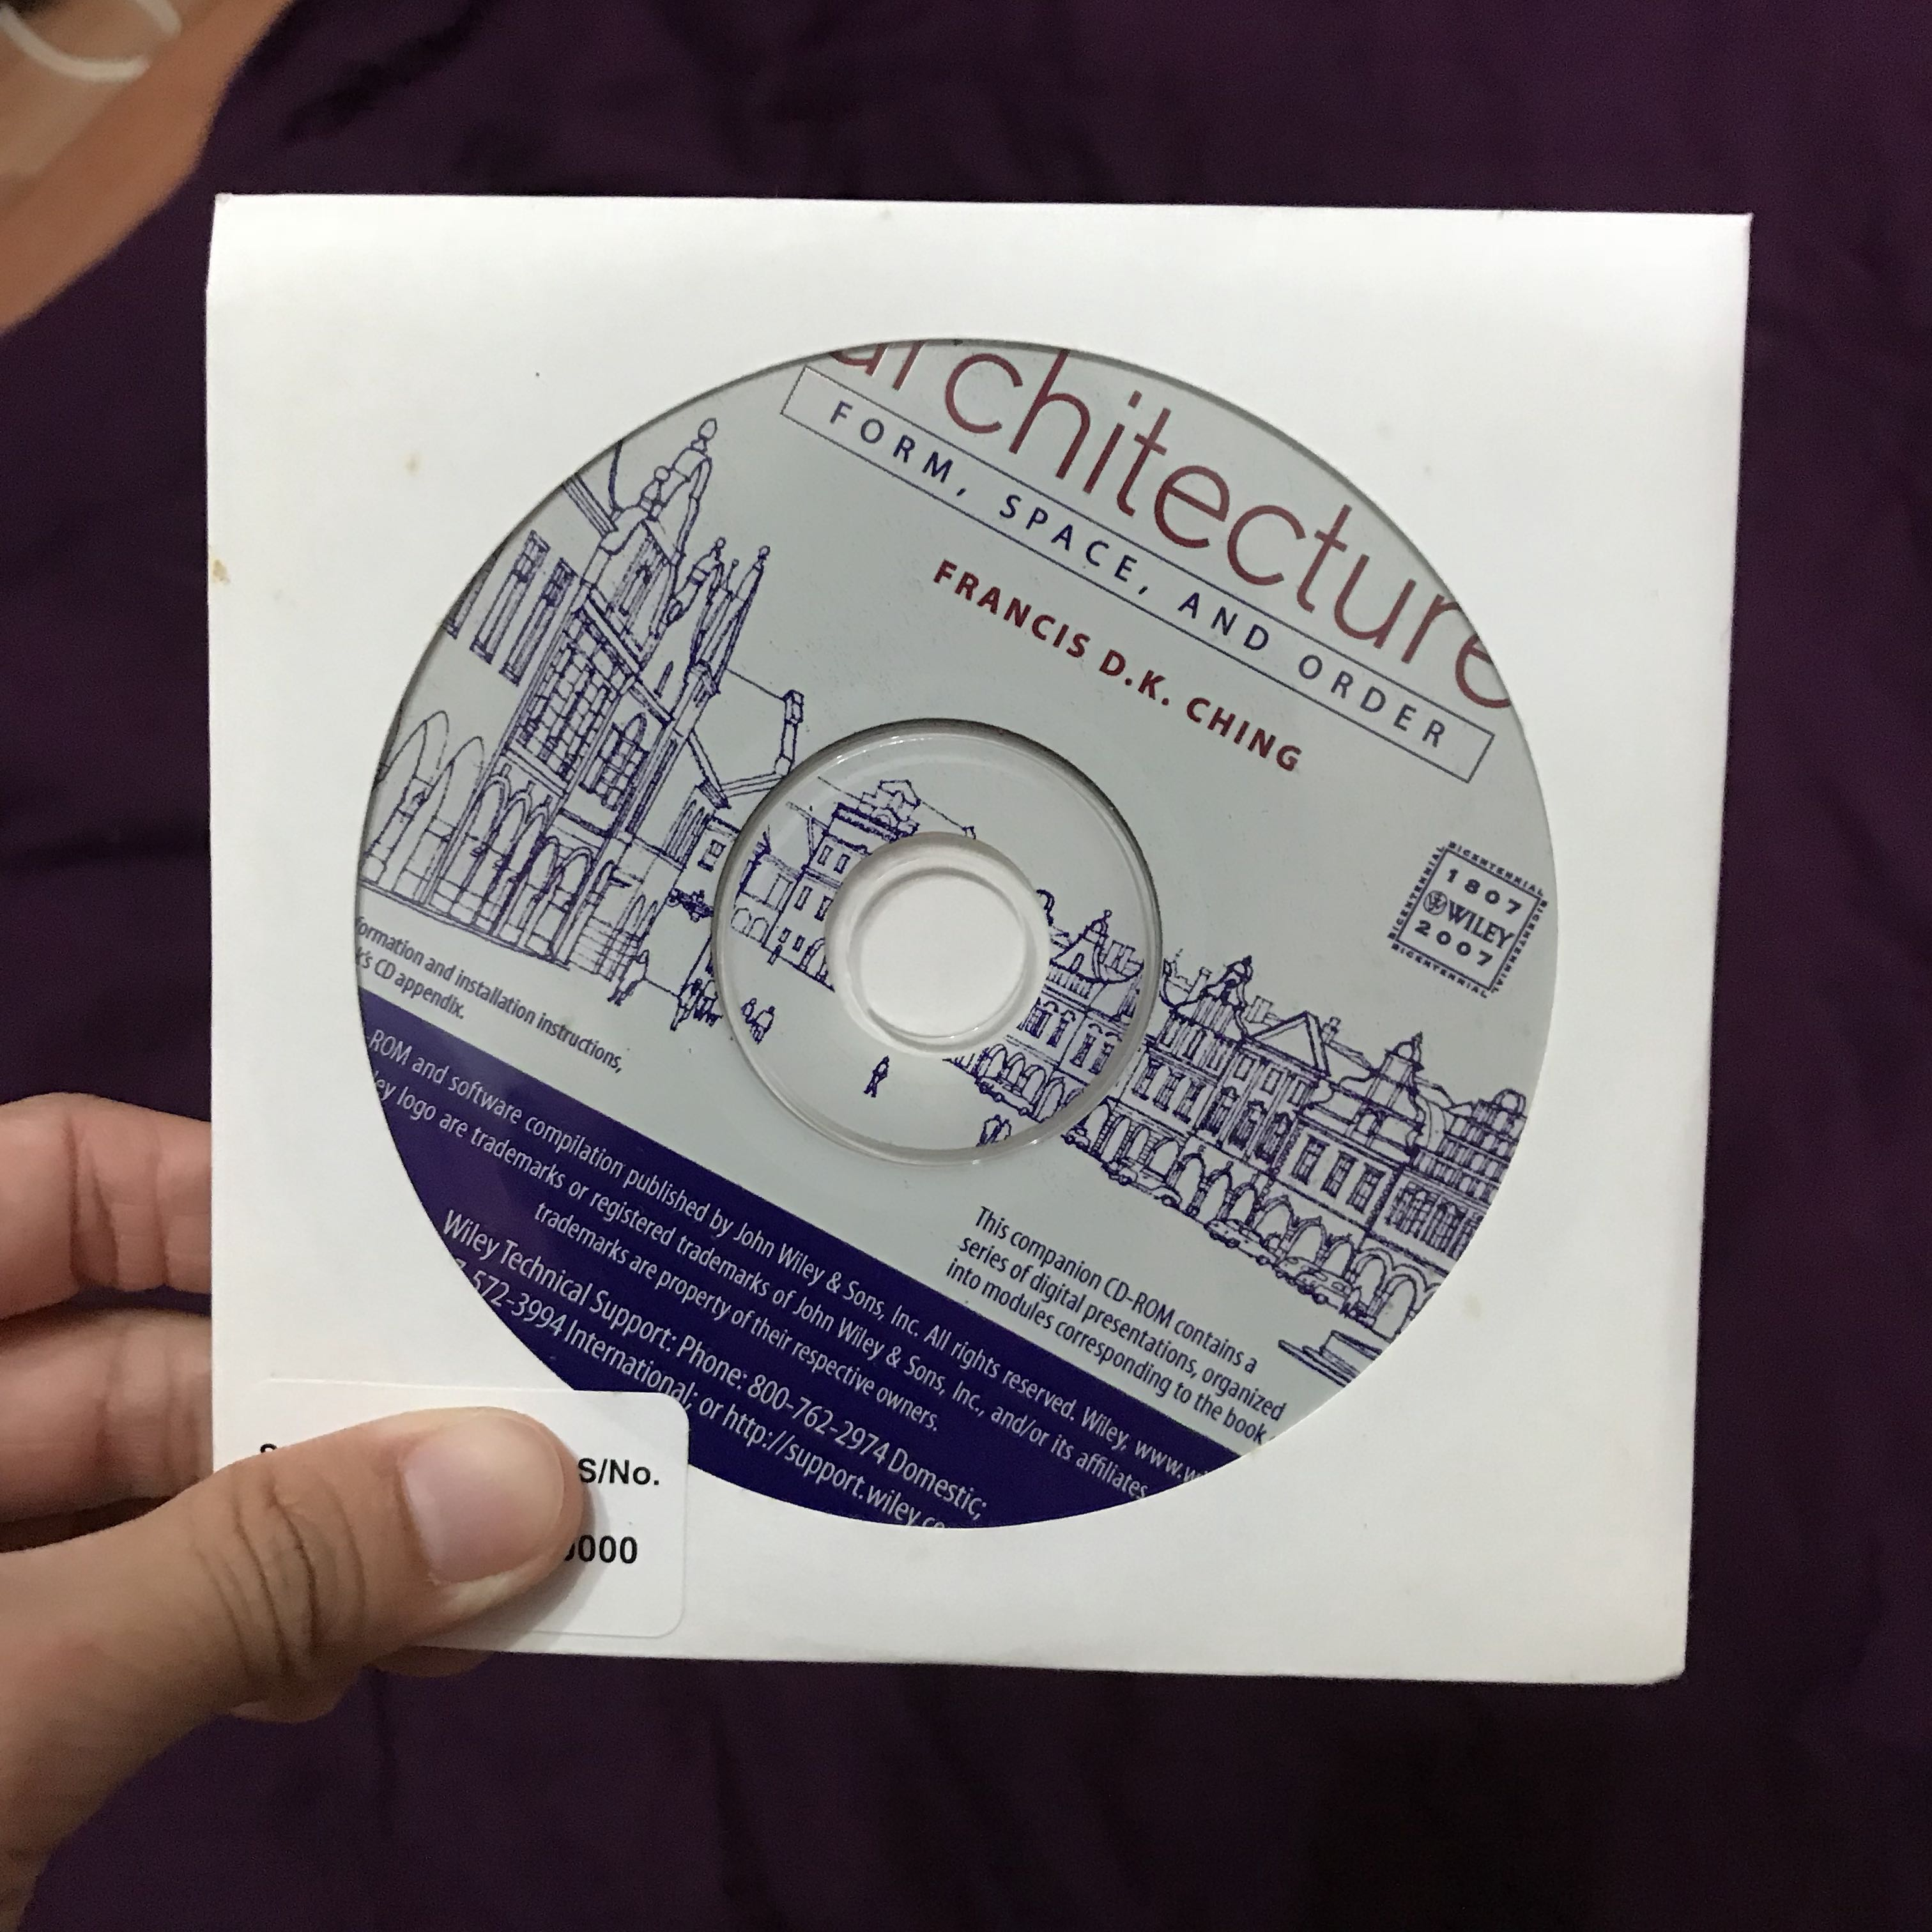 Architecture CD for students - form, space, order Francis D K Ching on